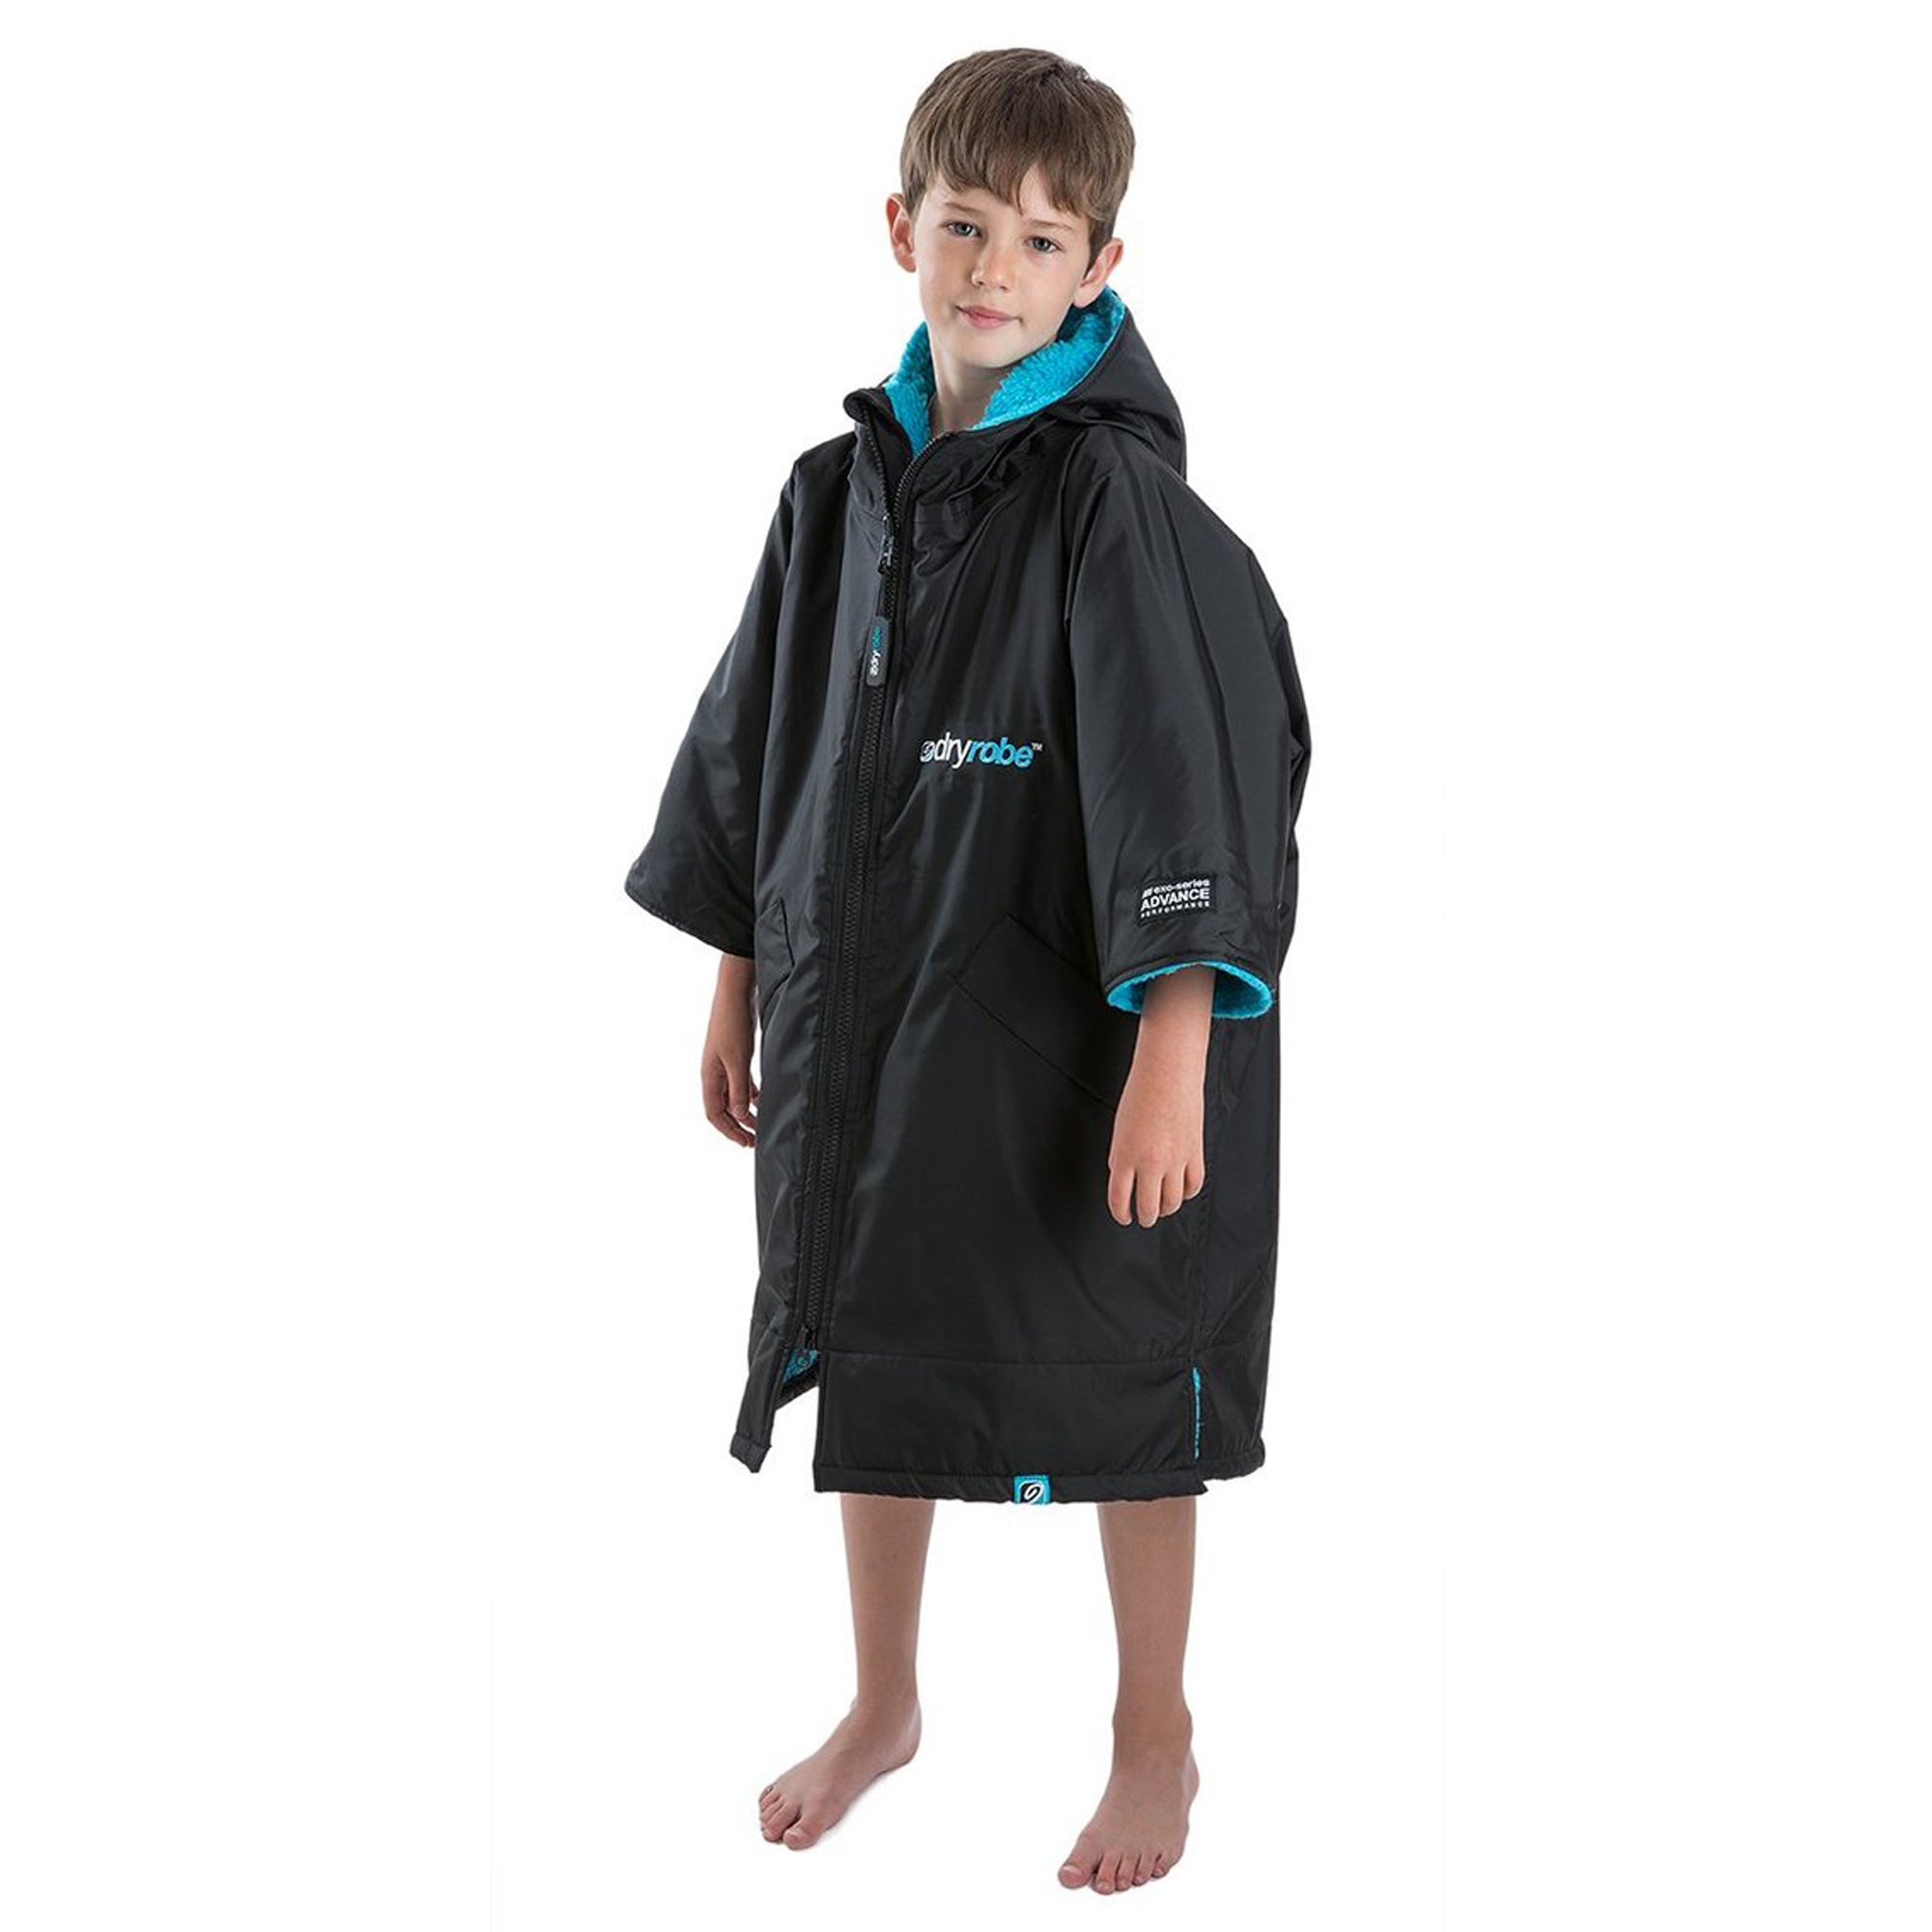 Dryrobe Advance Kids Short Sleeve - Black & Blue